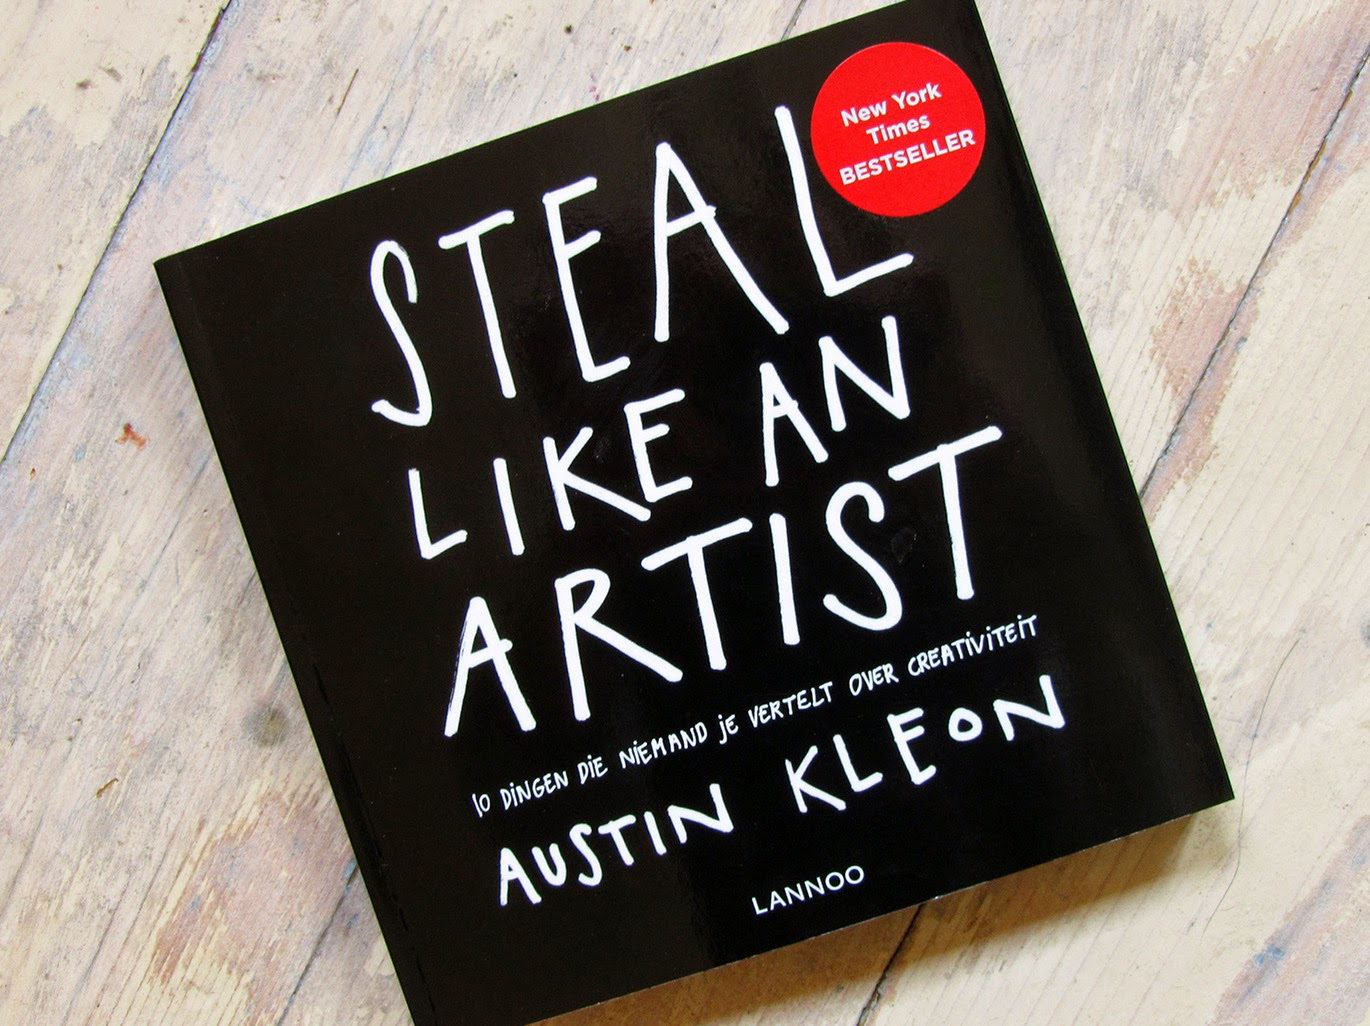 Steal like an artist, by Austin Kleon